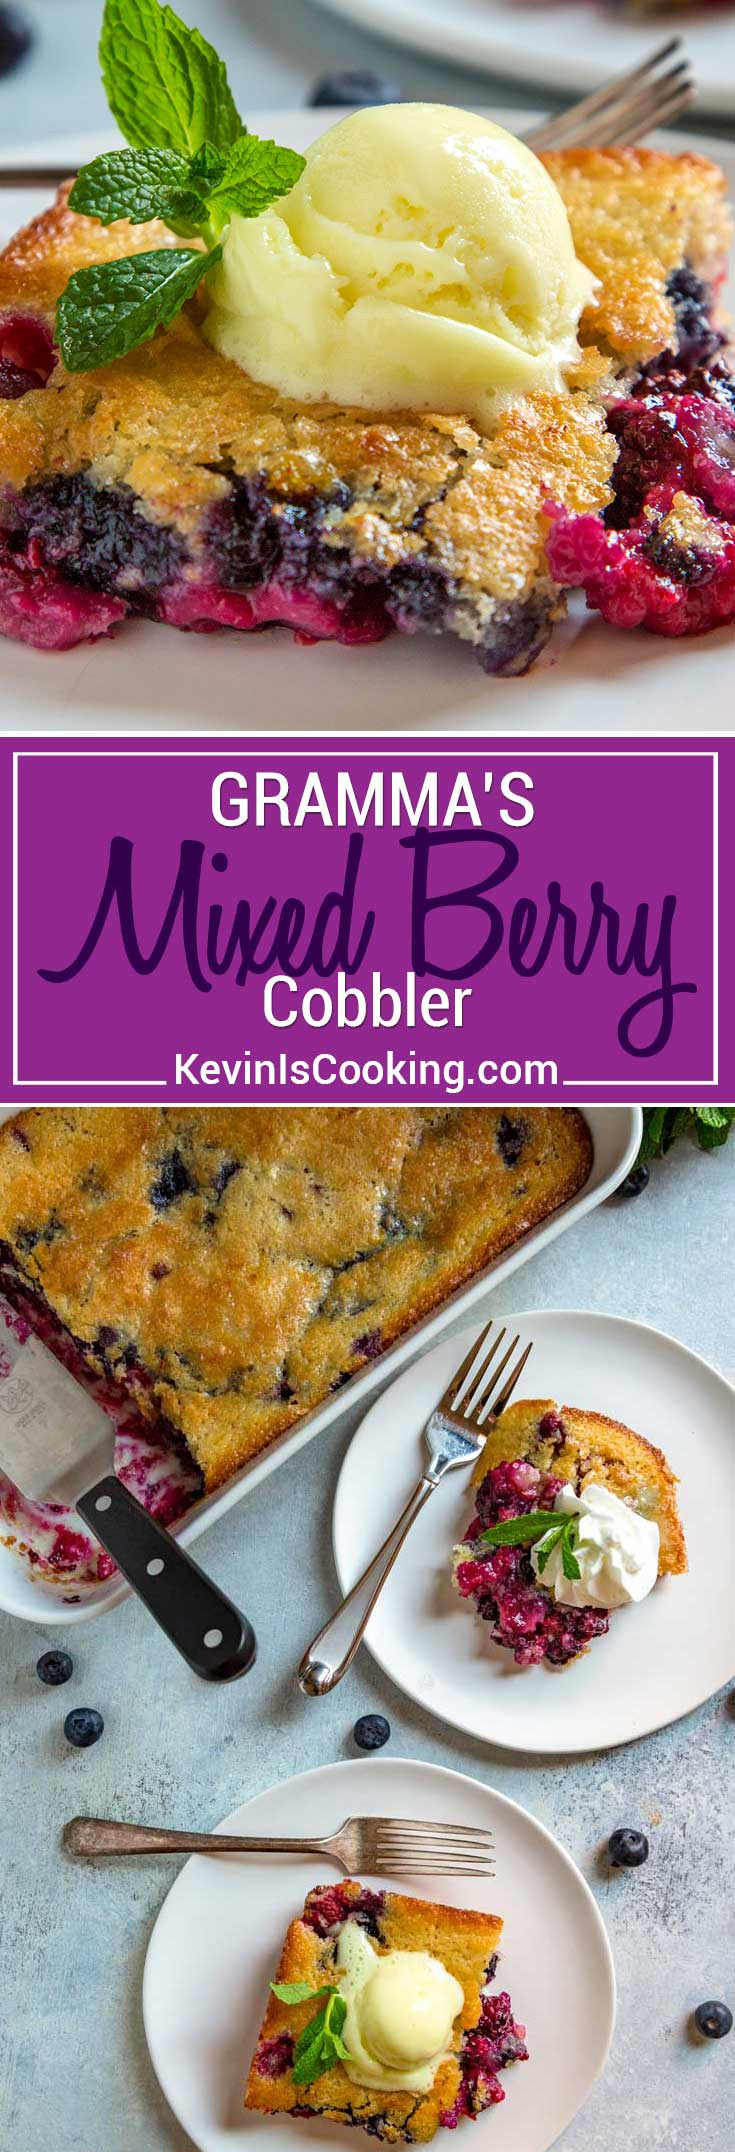 If you're looking for a great Springtime, old fashioned dessert, then my Gramma's Easy Berry Cobbler is one for you. A tasty, buttery batter that gets poured over fresh seasonal berries of choice is baked to a golden brown and is ready for a scoop of ice cream or whipped cream. #dessert #berries #cobbler